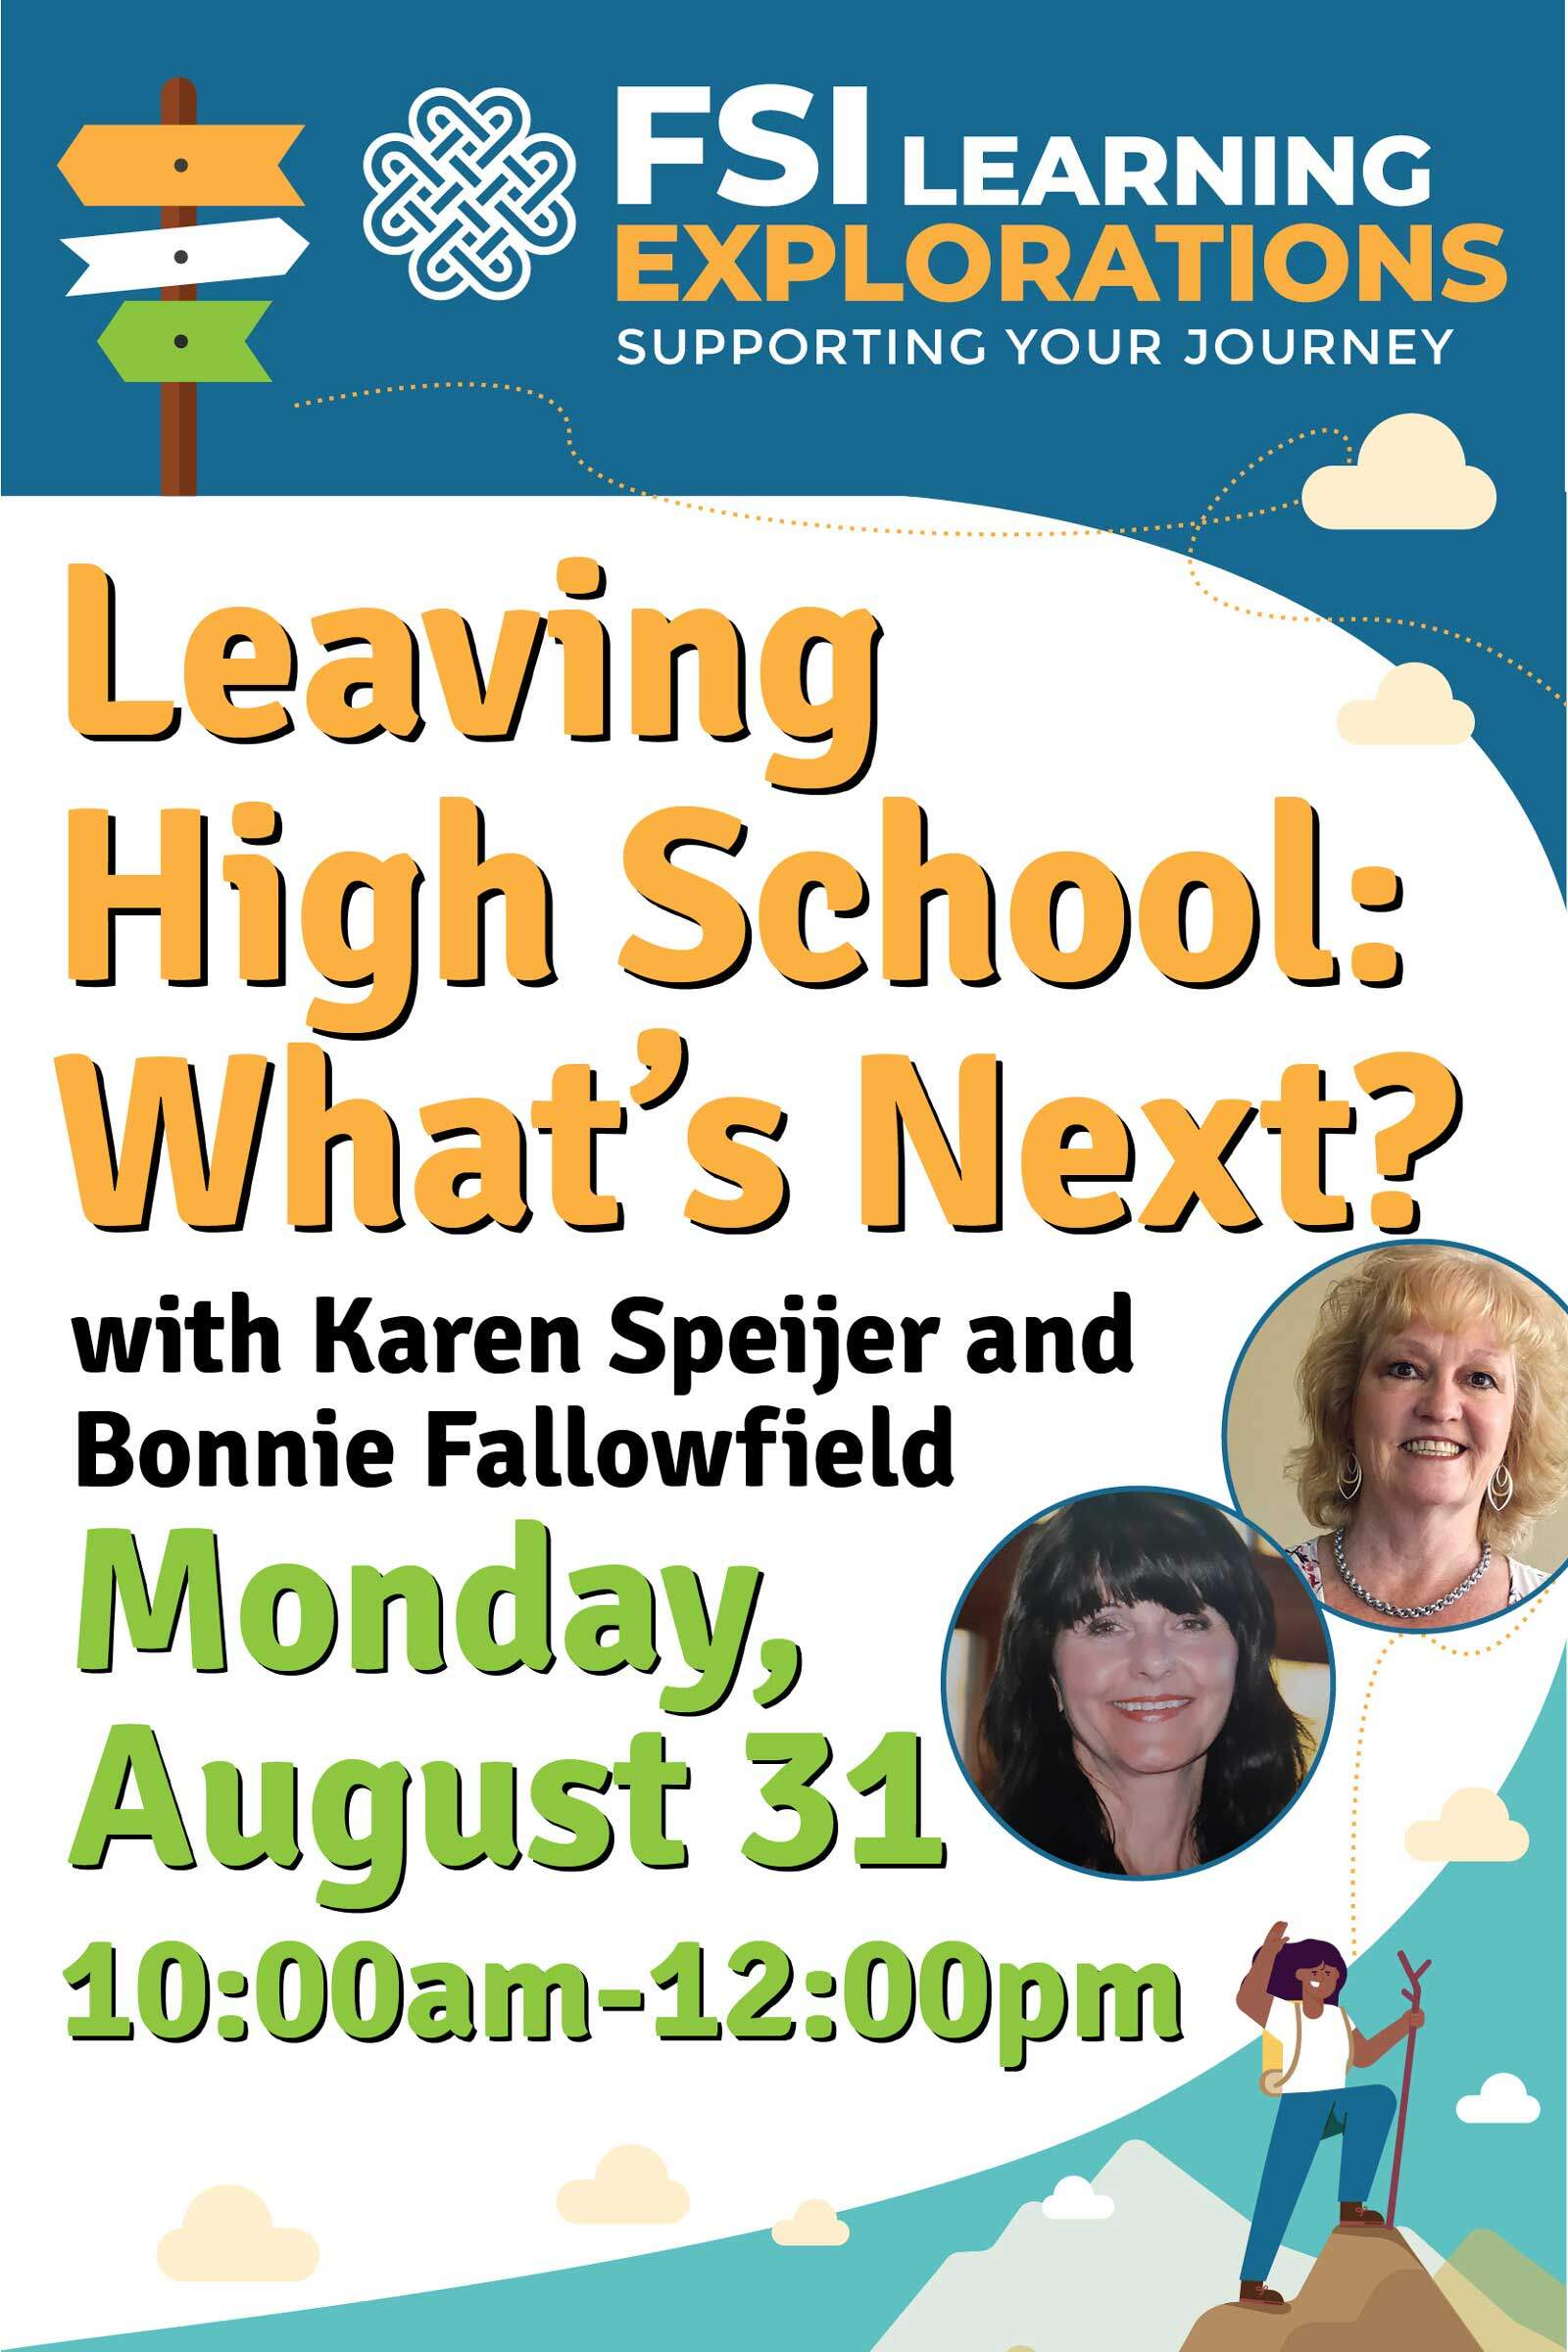 FSI Learning Explorations - Leaving High School: What's Next